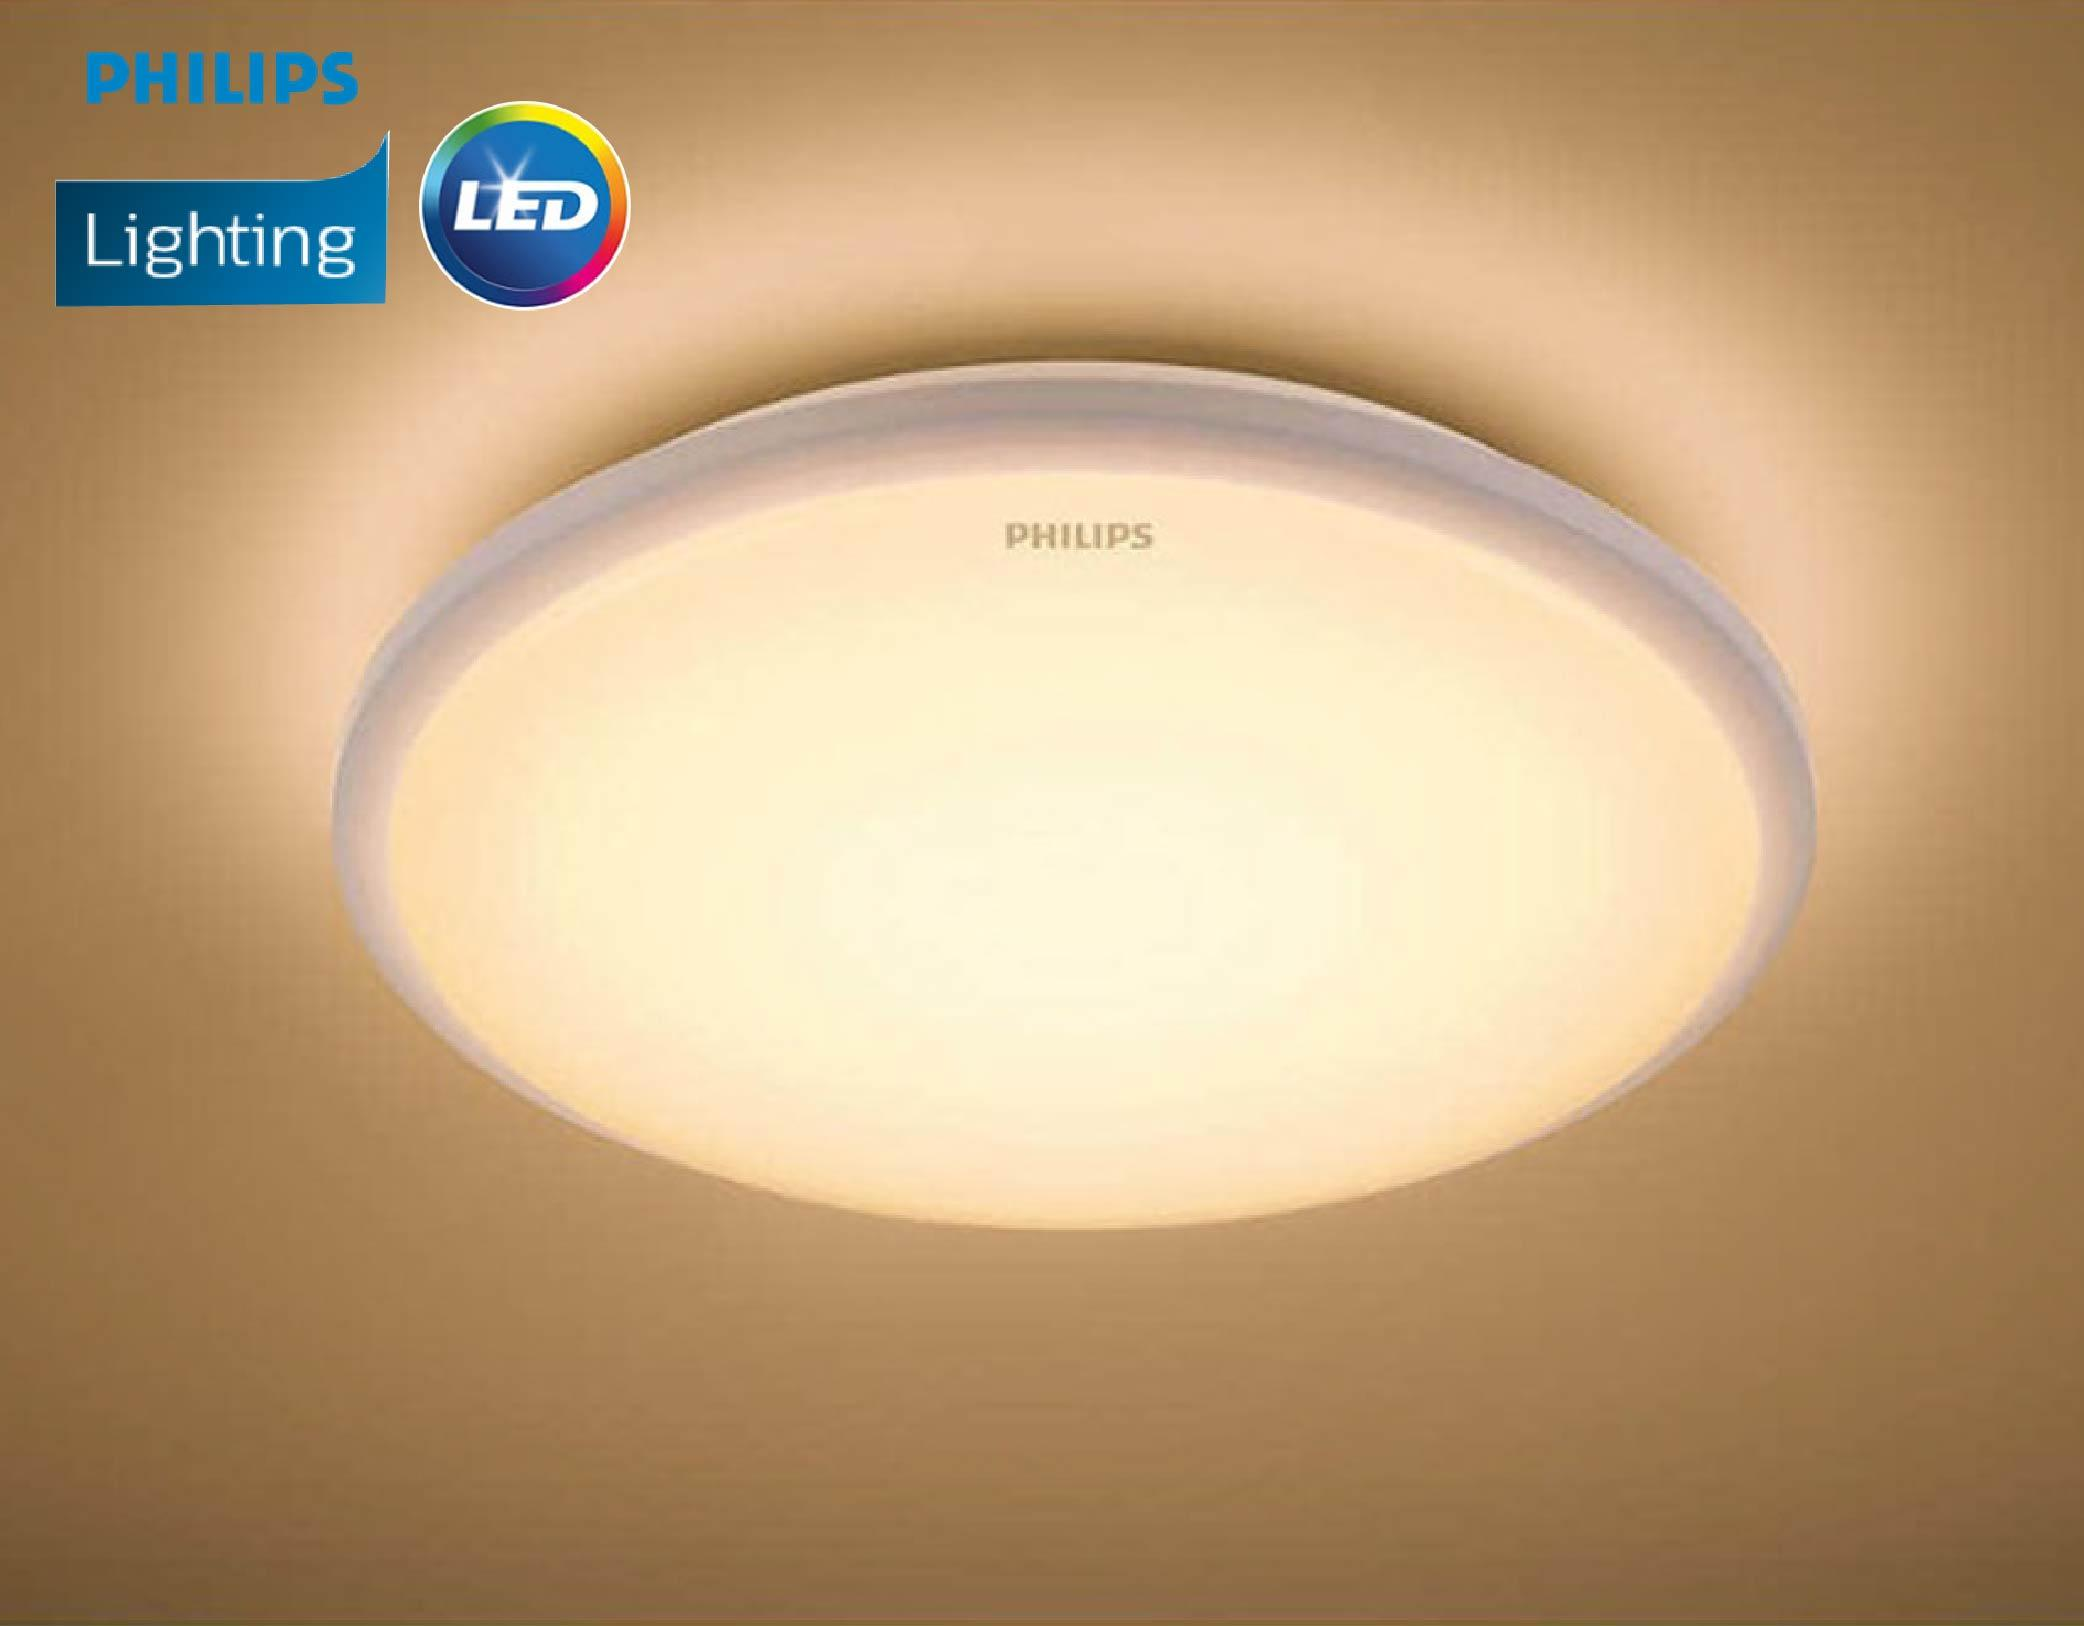 Philips 33369 65K/27K Cool Daylight/Warm White (10W/650lm) Moire Round LED Essential Ceiling Light